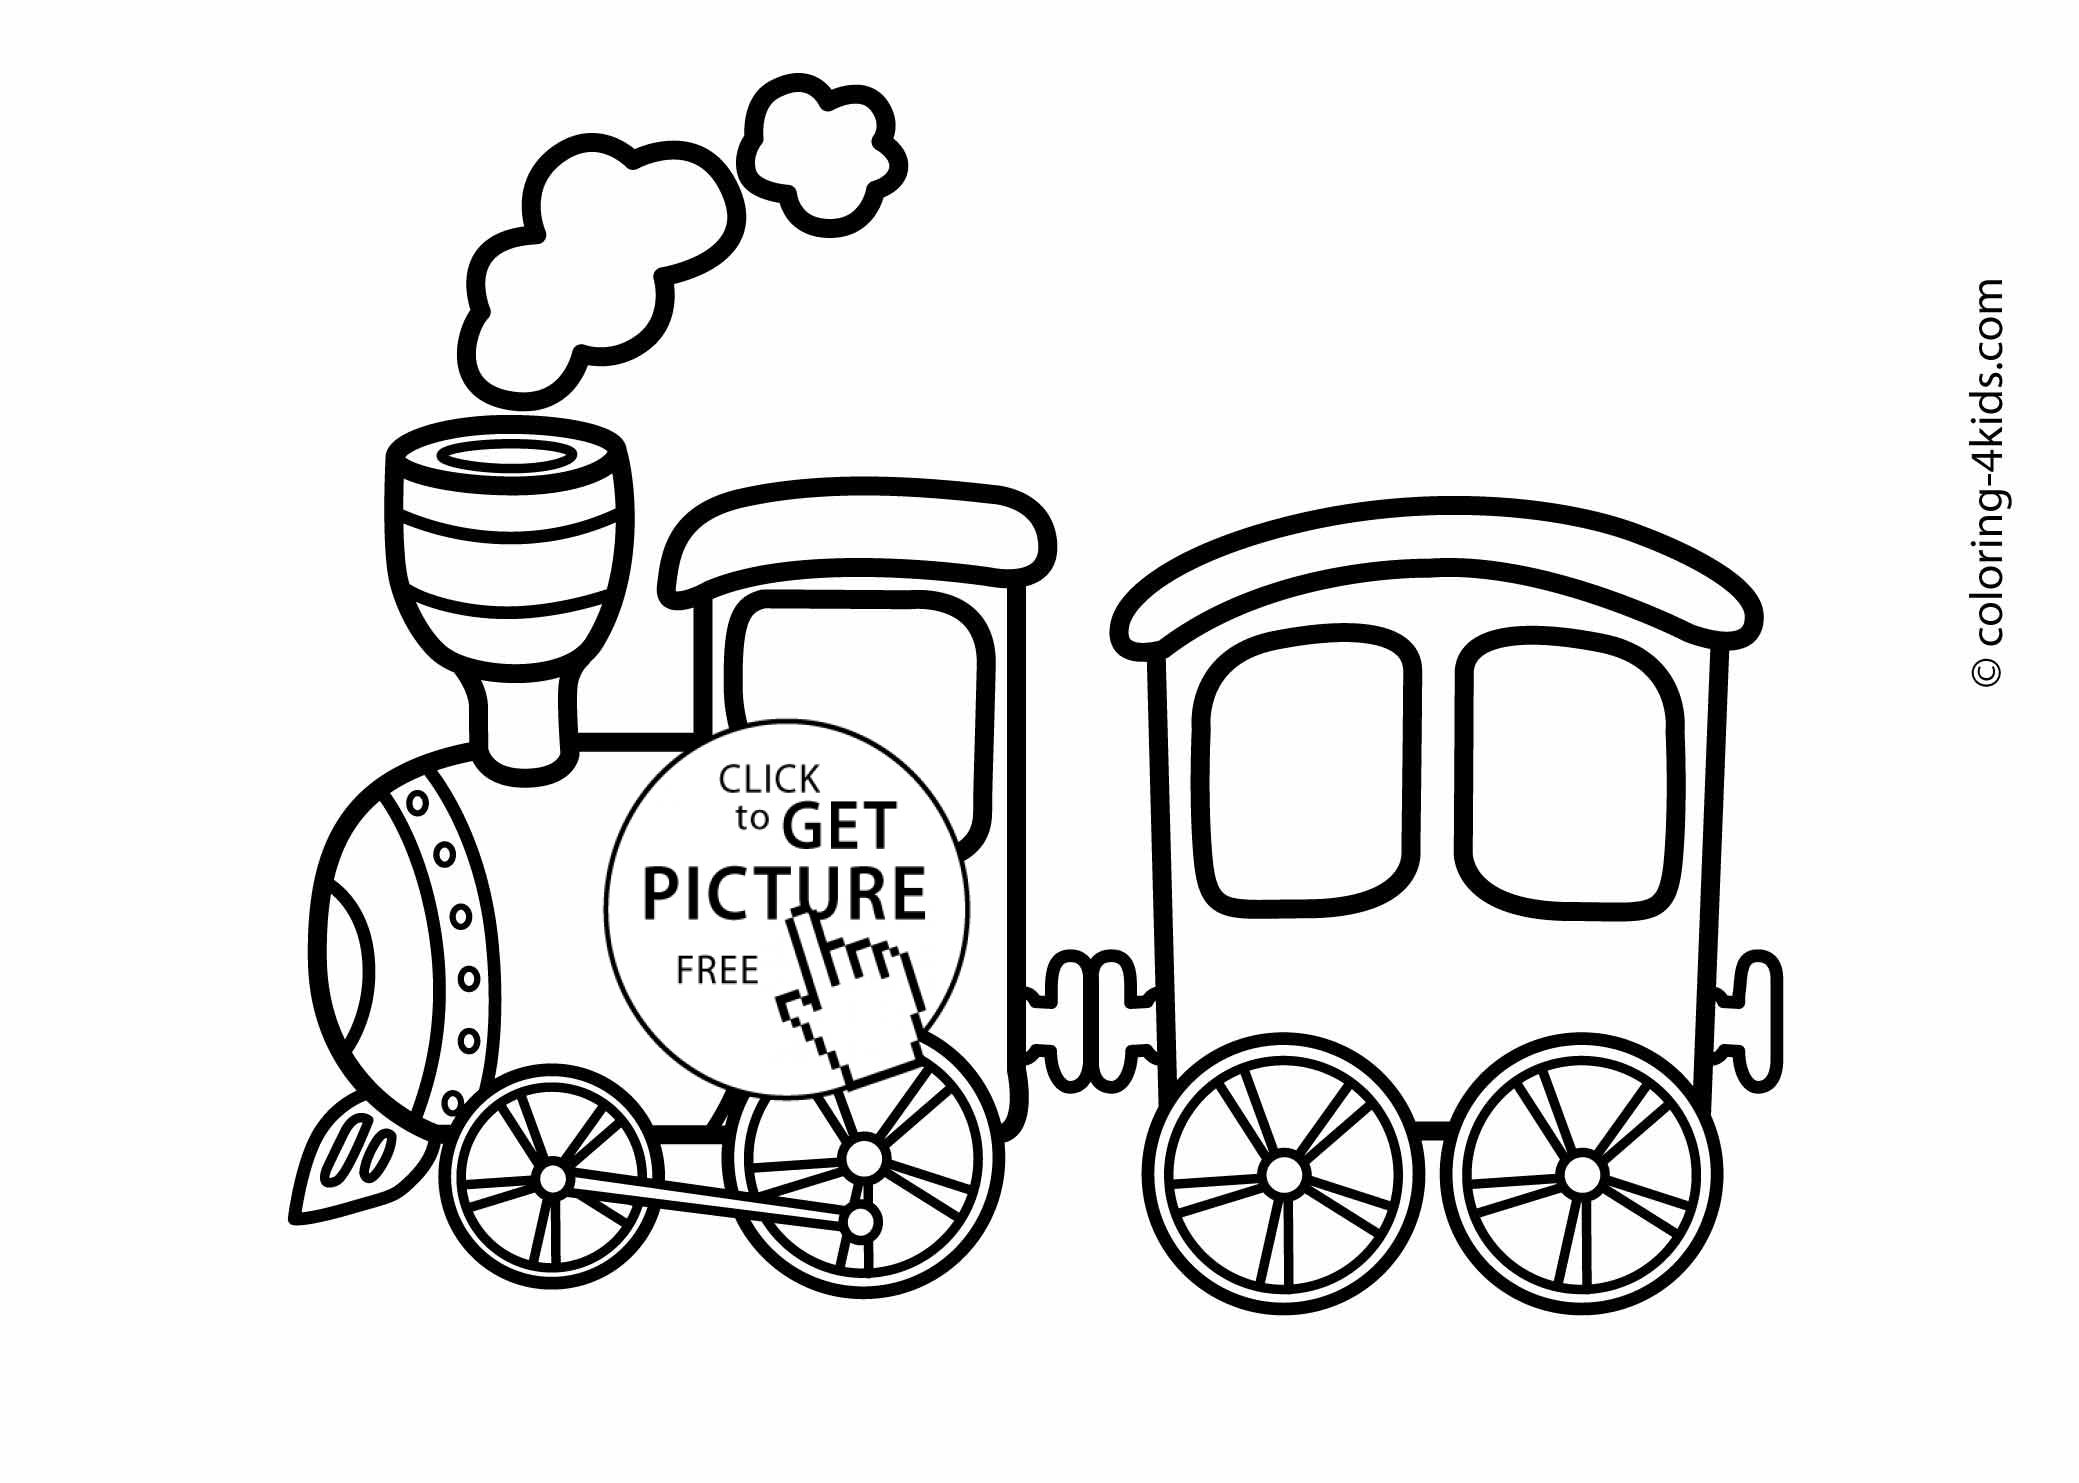 Coloring pages trains for kids - Train Transportation Coloring Pages For Kids Printable